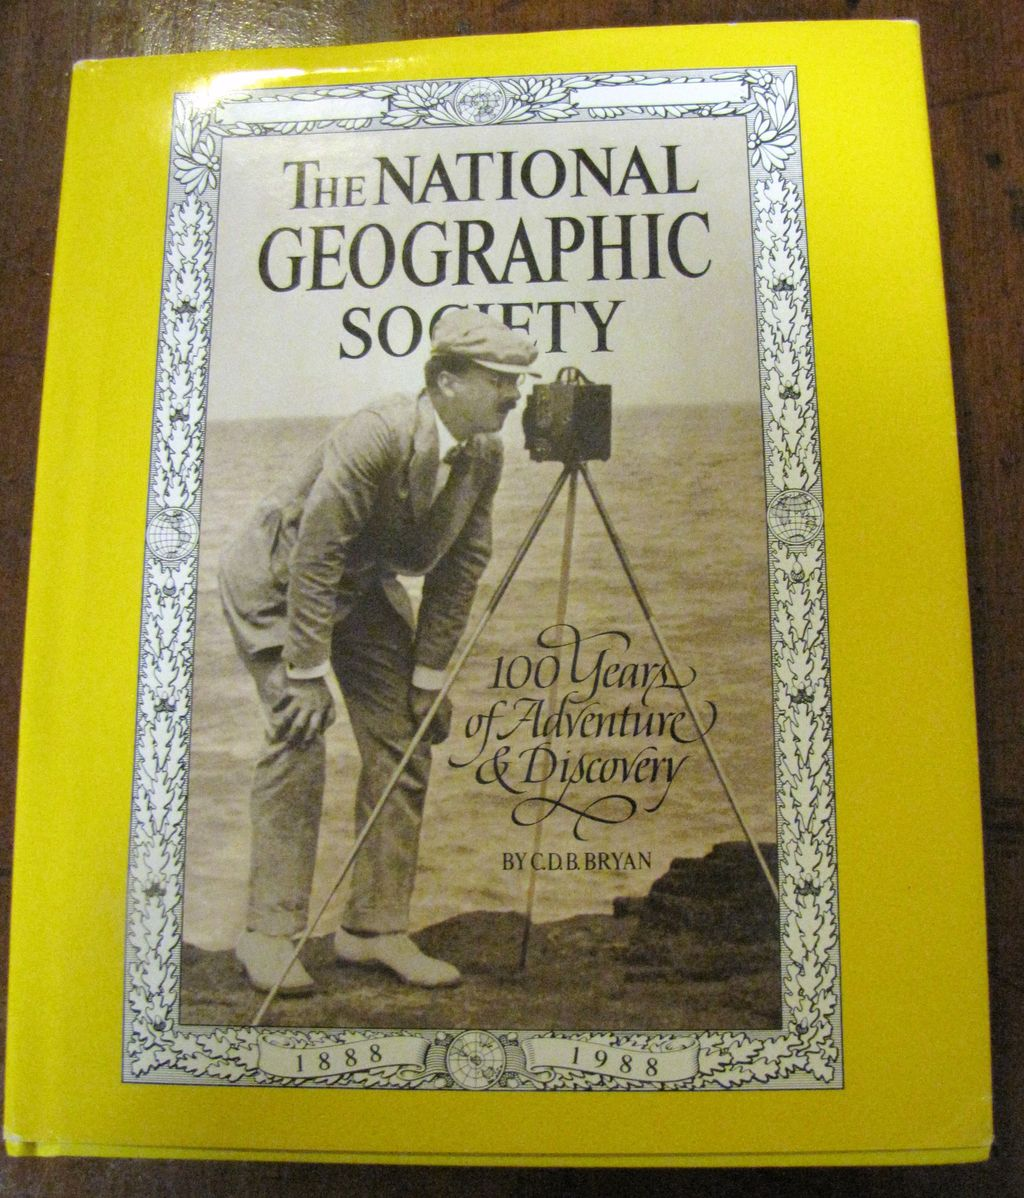 National Geographic Society: 100 Years of Adventure and Discovery 1888 to 1988